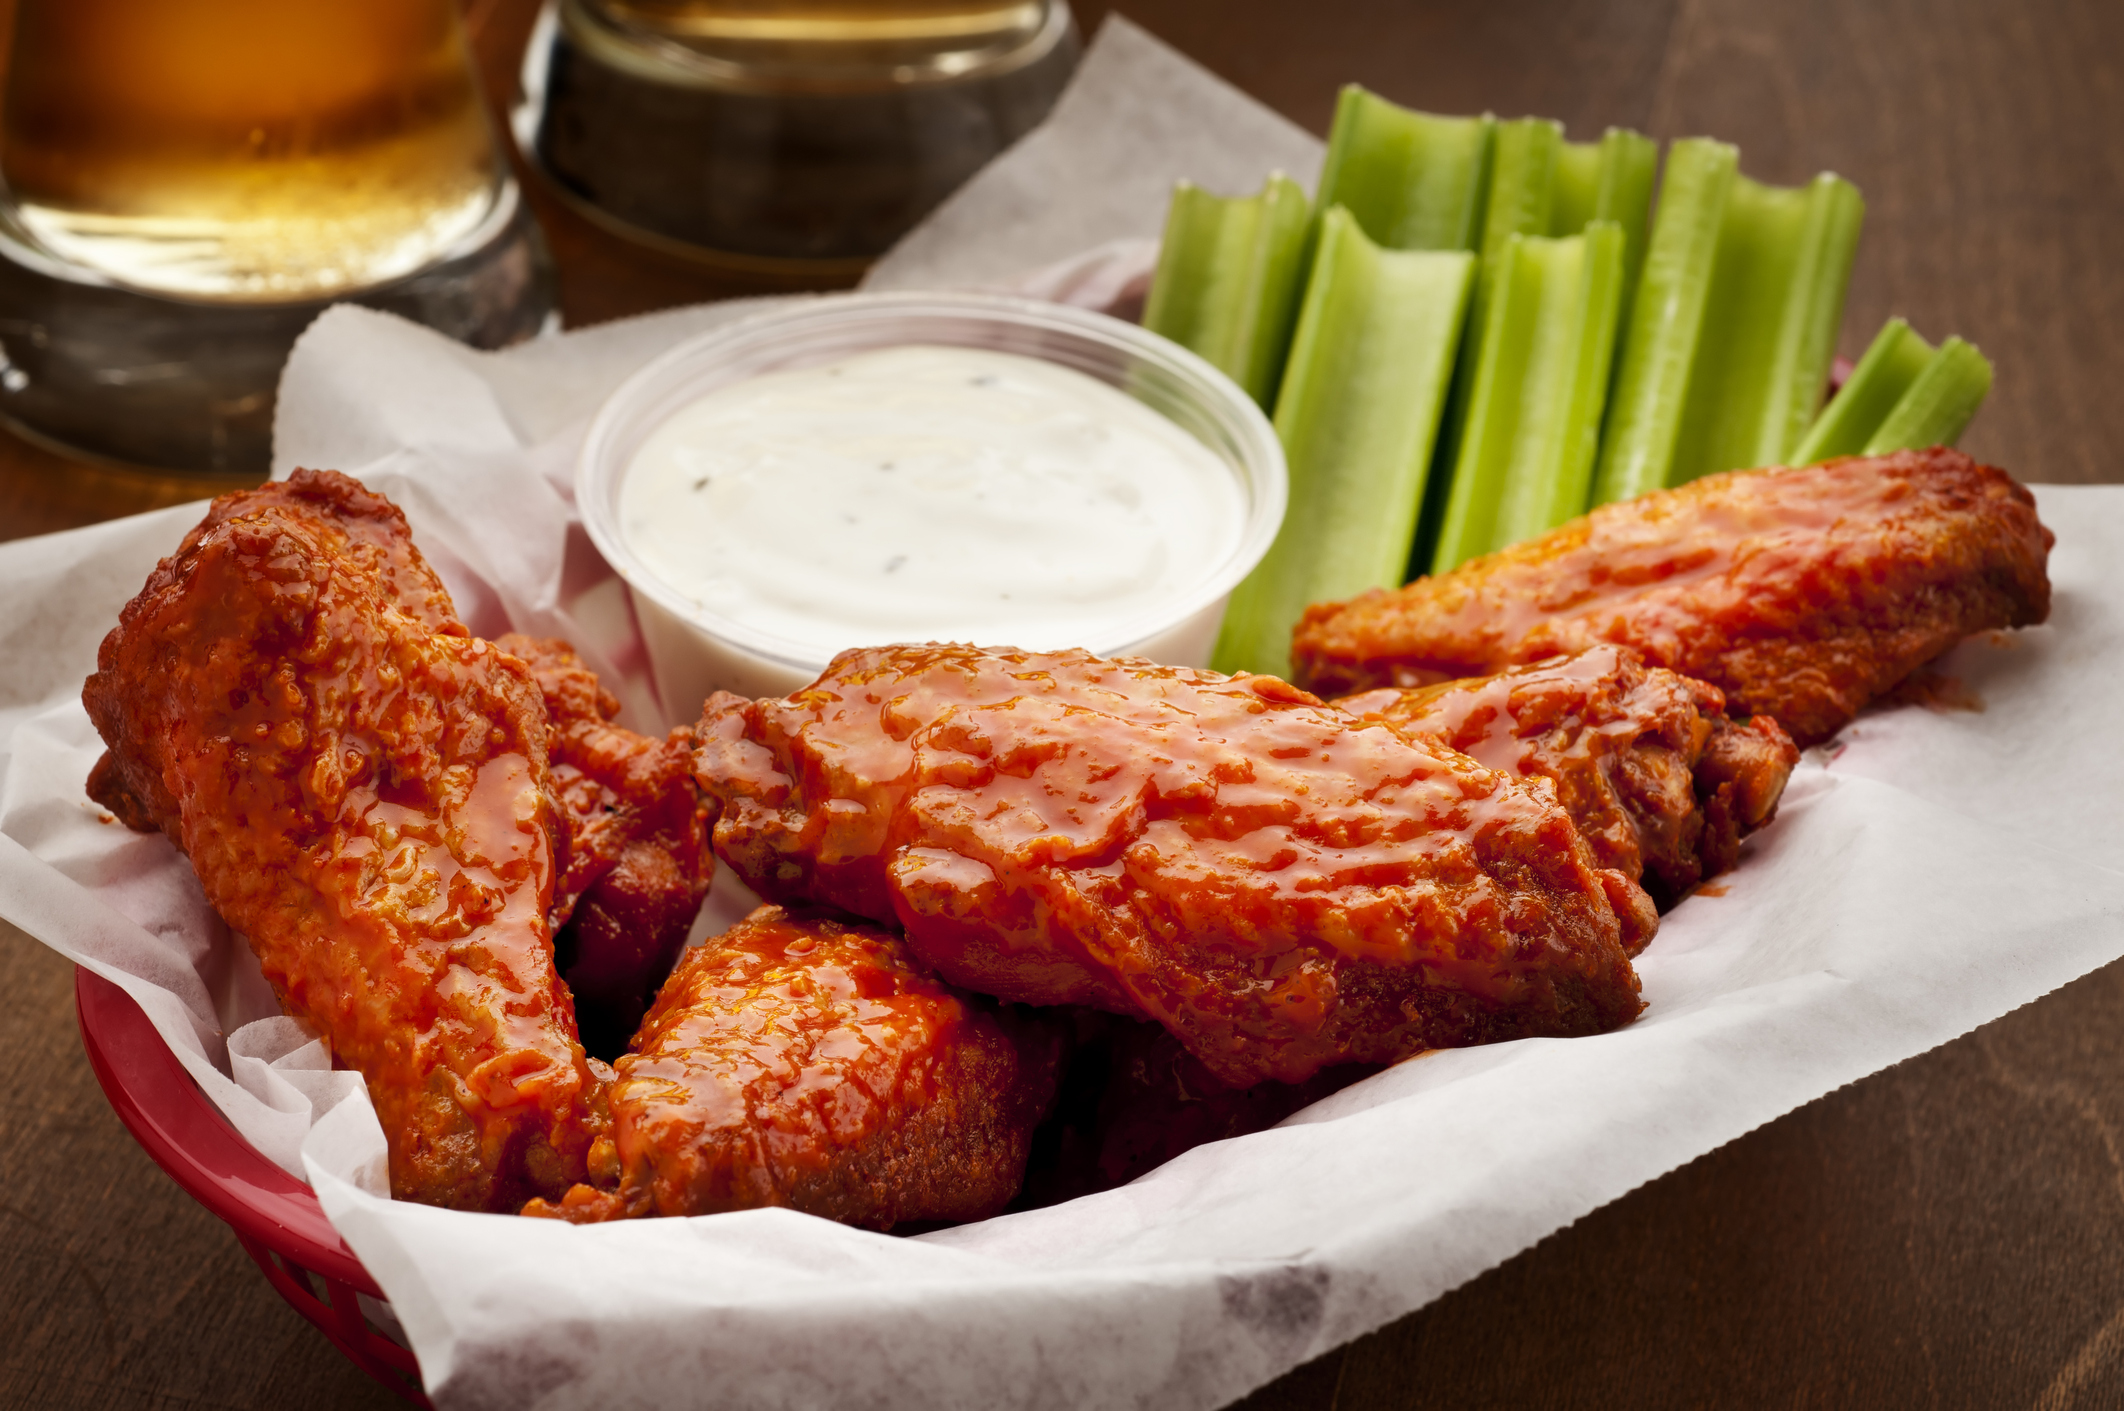 8. Hot Wings